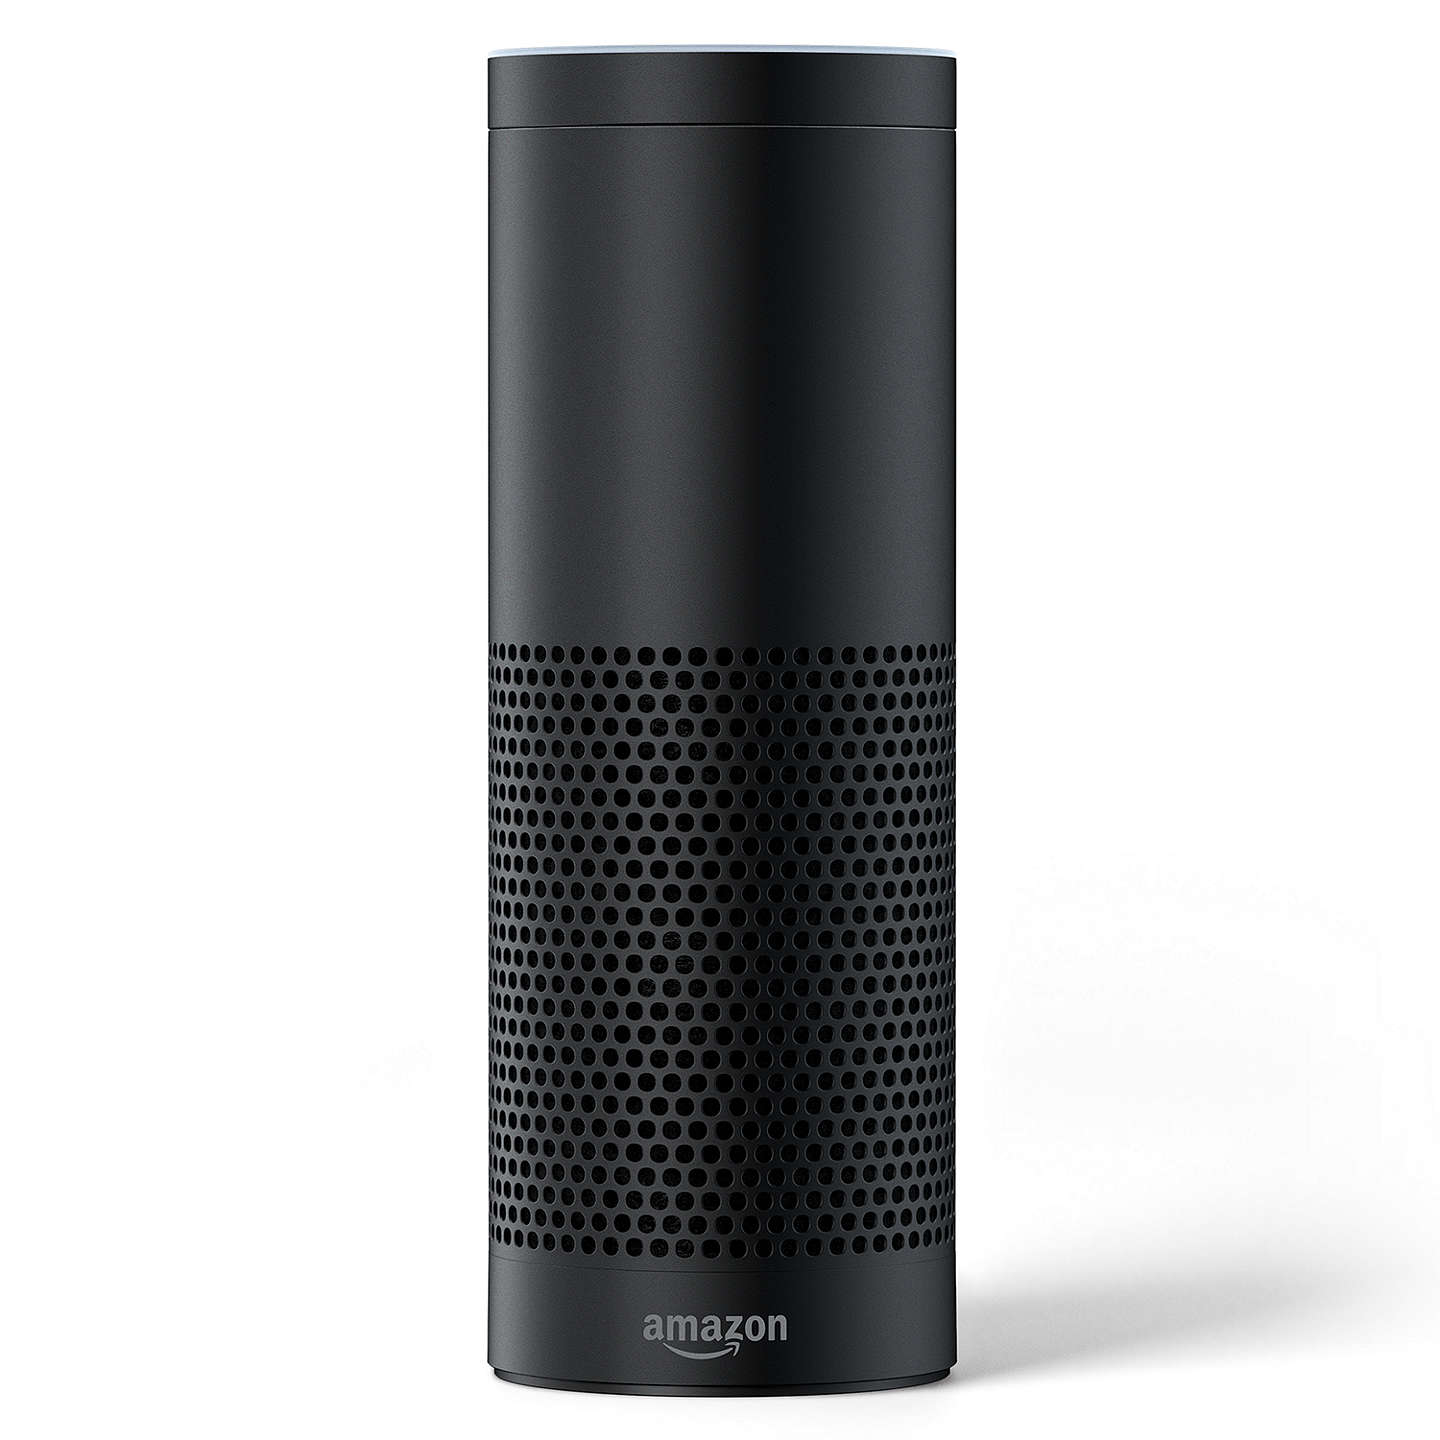 BuyAmazon Echo Plus Smart Speaker with Built-in Smart Home Hub with Alexa Voice Recognition & Control, Black Online at johnlewis.com